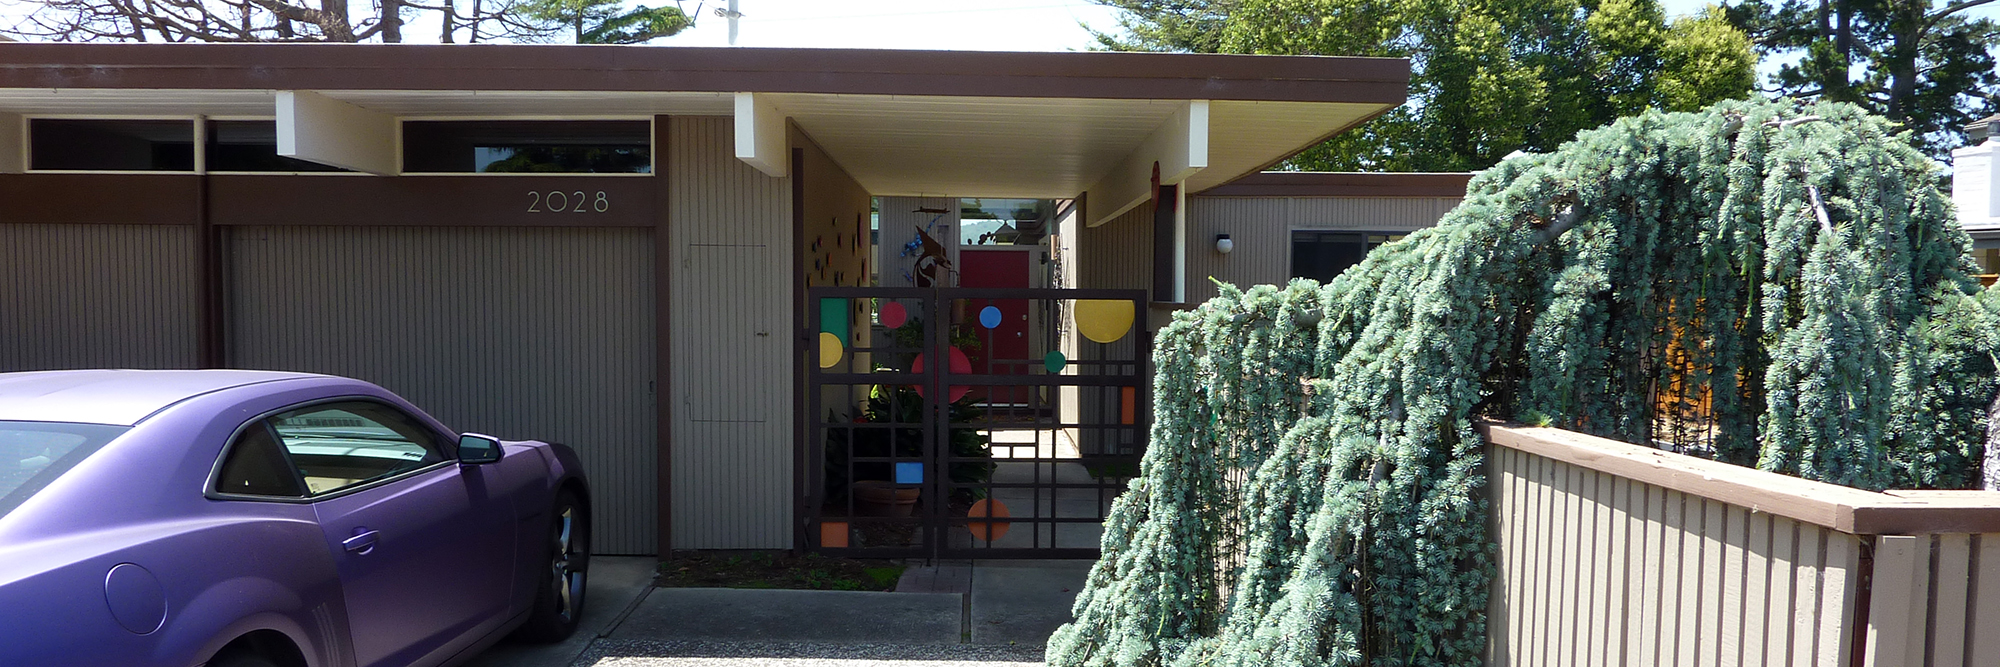 Eichler Home Tour 2017 - 282 Random Eichler Collage.JPG